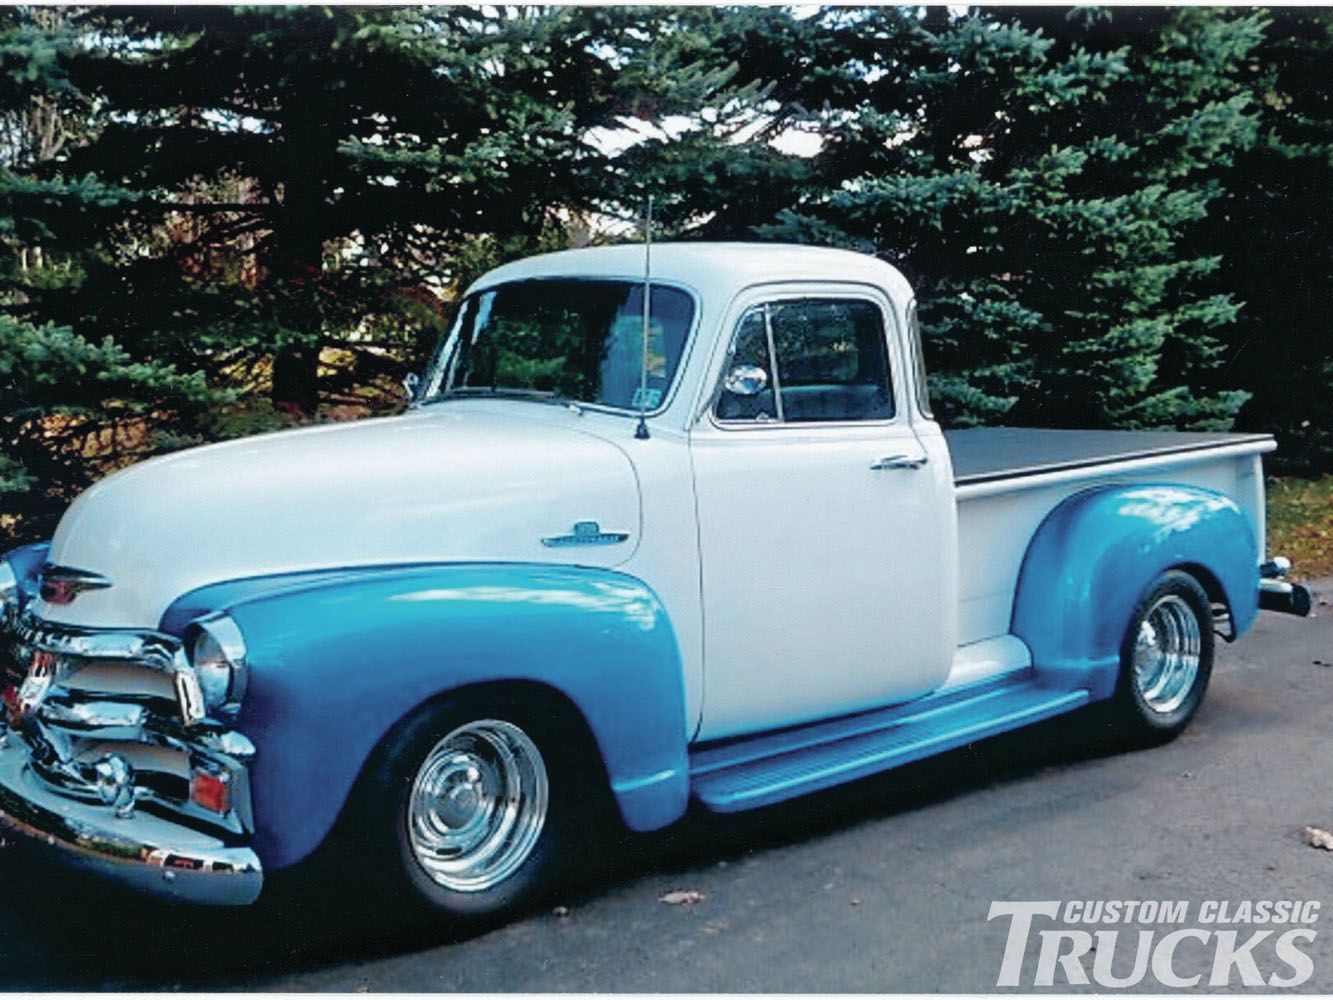 1955 chevy truck car clubs autos post - 1955 Chevy Pickup 1955 First Series Chevy Gmc Pickup Truck